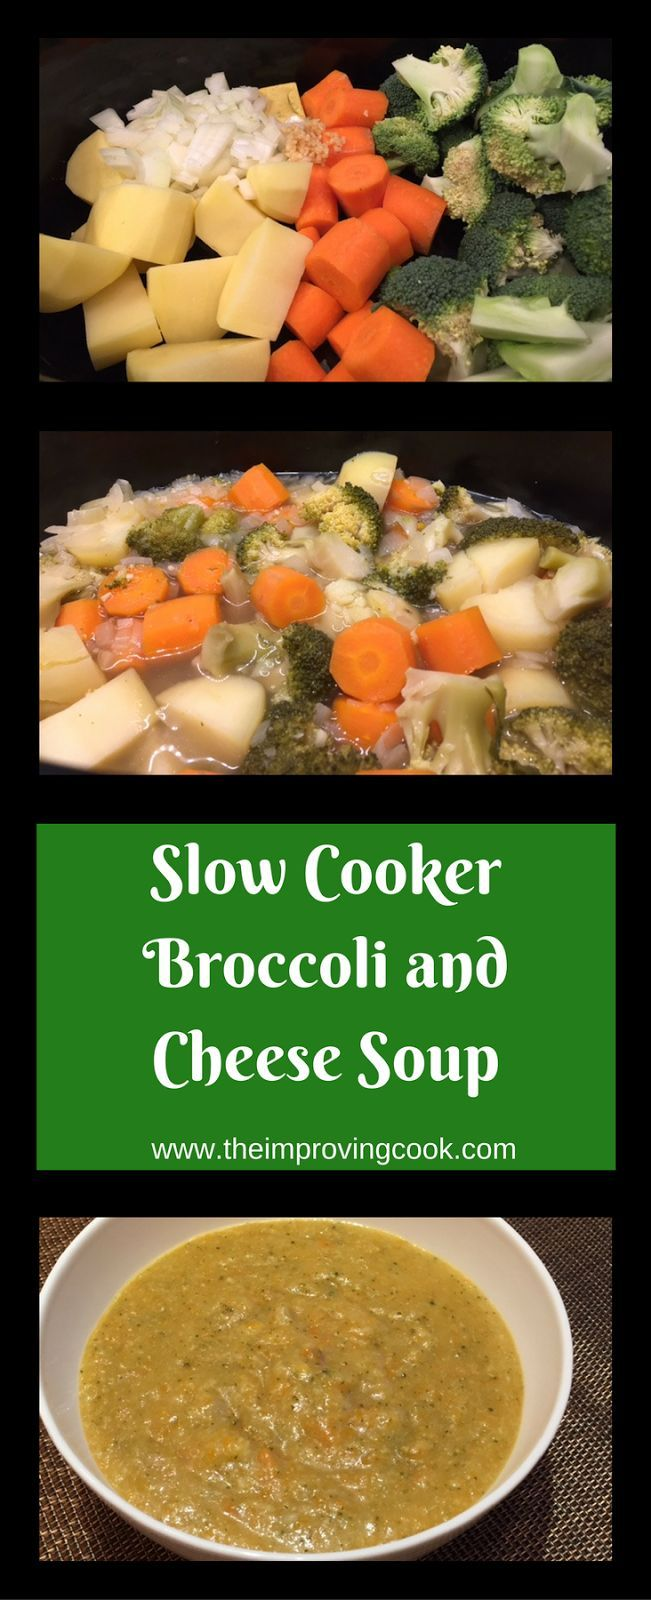 Slow Cooker Broccoli Cheese Soup- soup packed with veggies and added flavour from mature cheddar.